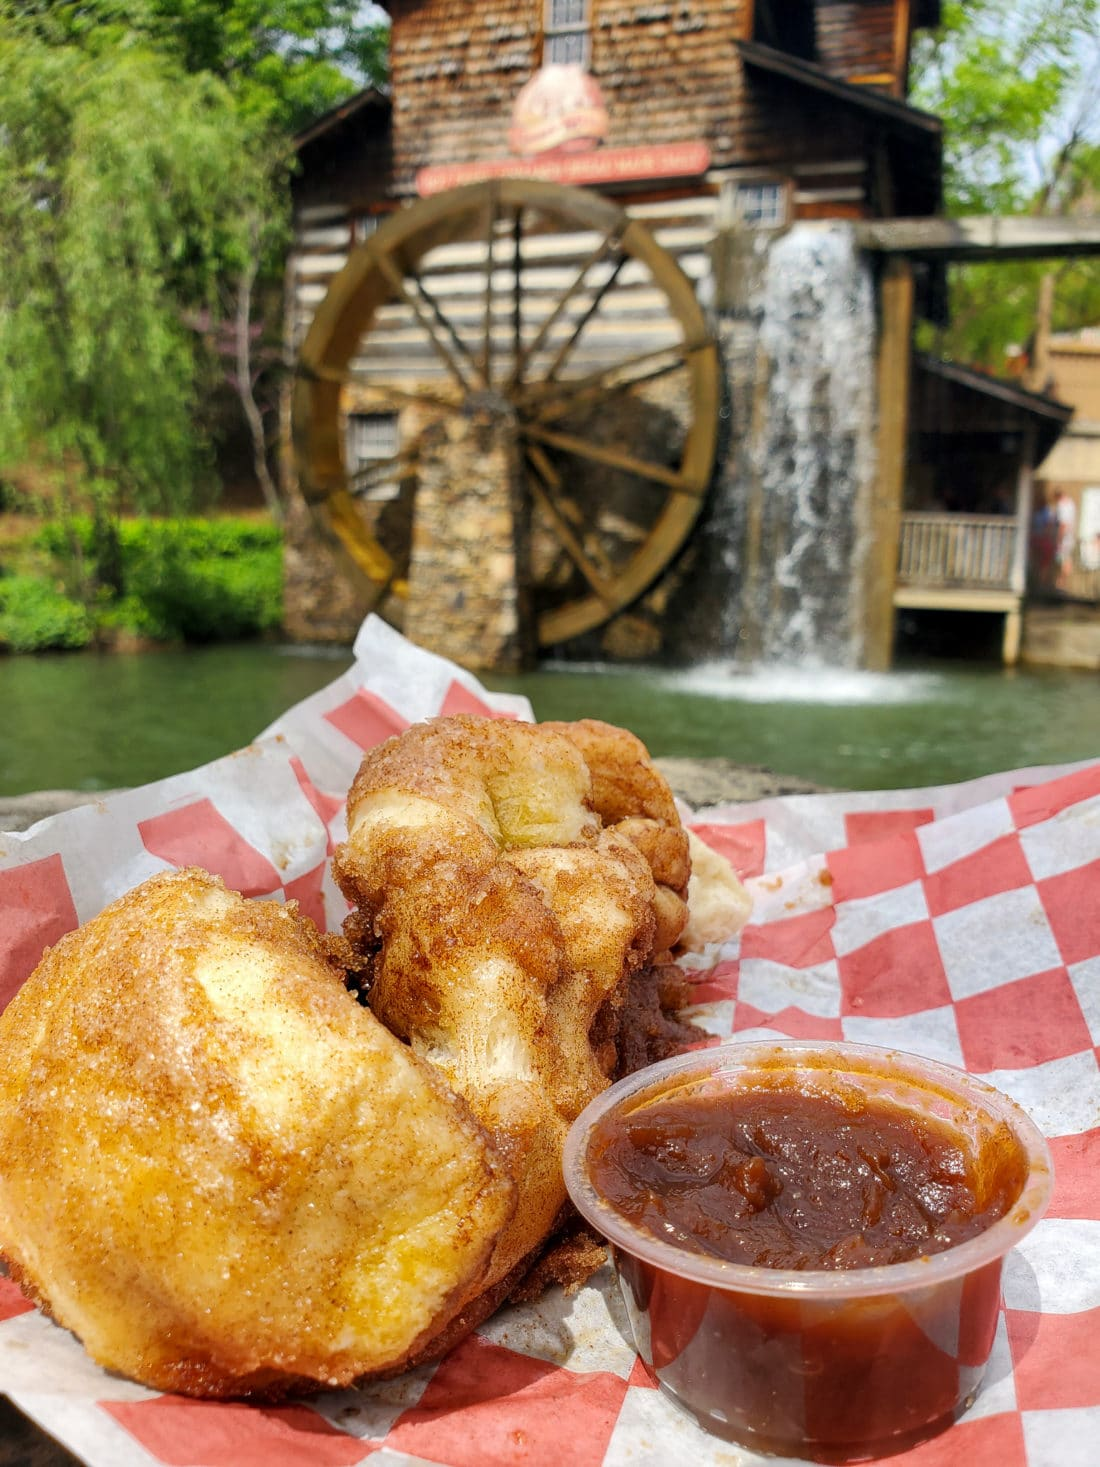 Grist Mill Fresh Cinnamon Bread Apple Butter. My family spent the day playing and eating at the Dollywood theme park, and we are happy to report we had a blast! Read all about our trip and learn why Dollwood is a must visit destination while you are in Pigeon Forge, TN.